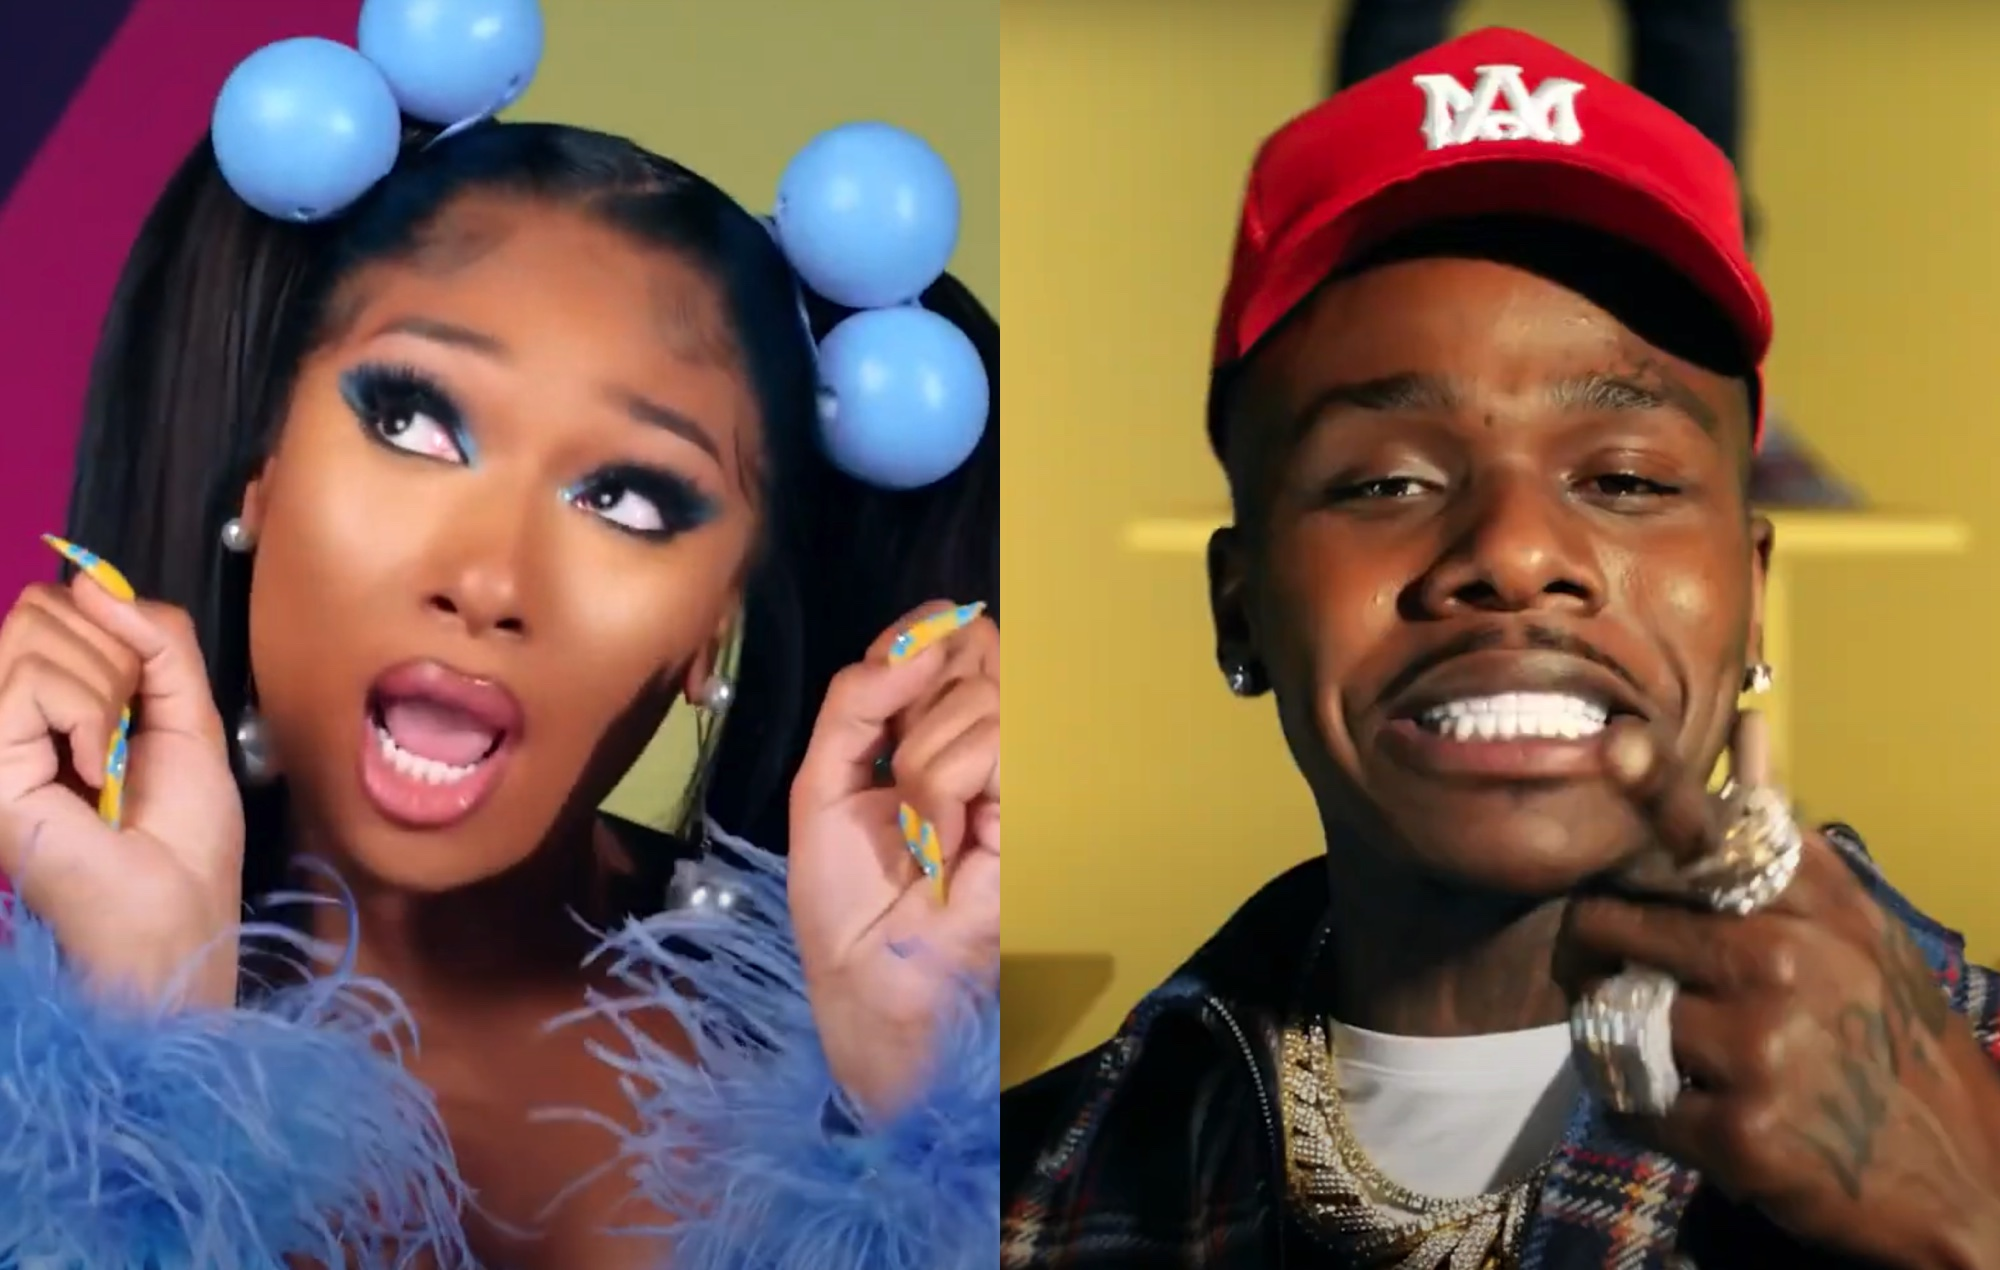 Megan Thee Stallion and DaBaby wreak havoc in a toy store for 'Crybaby' video